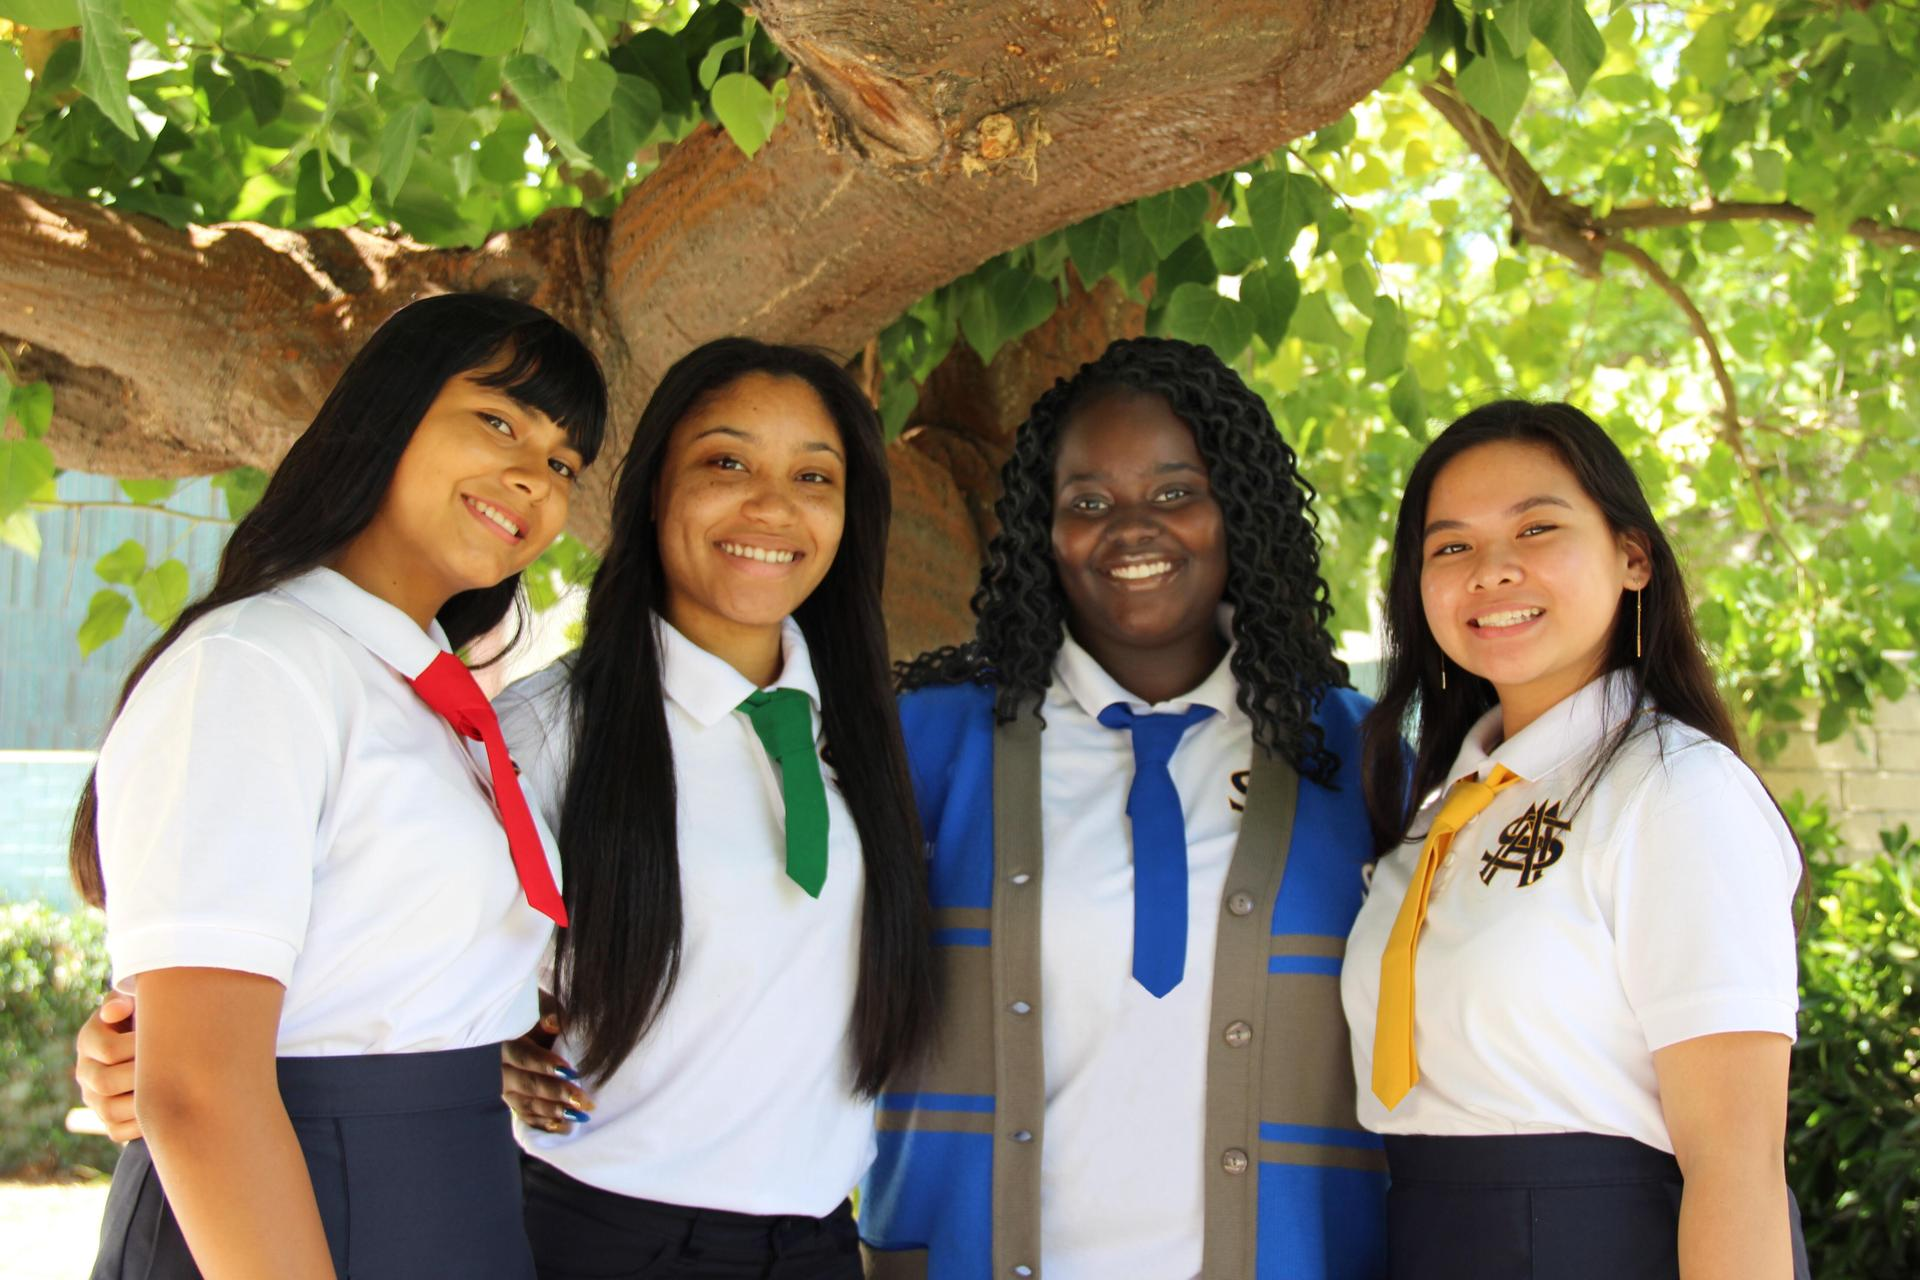 Four students Blue, Red, Green an Gold Ties